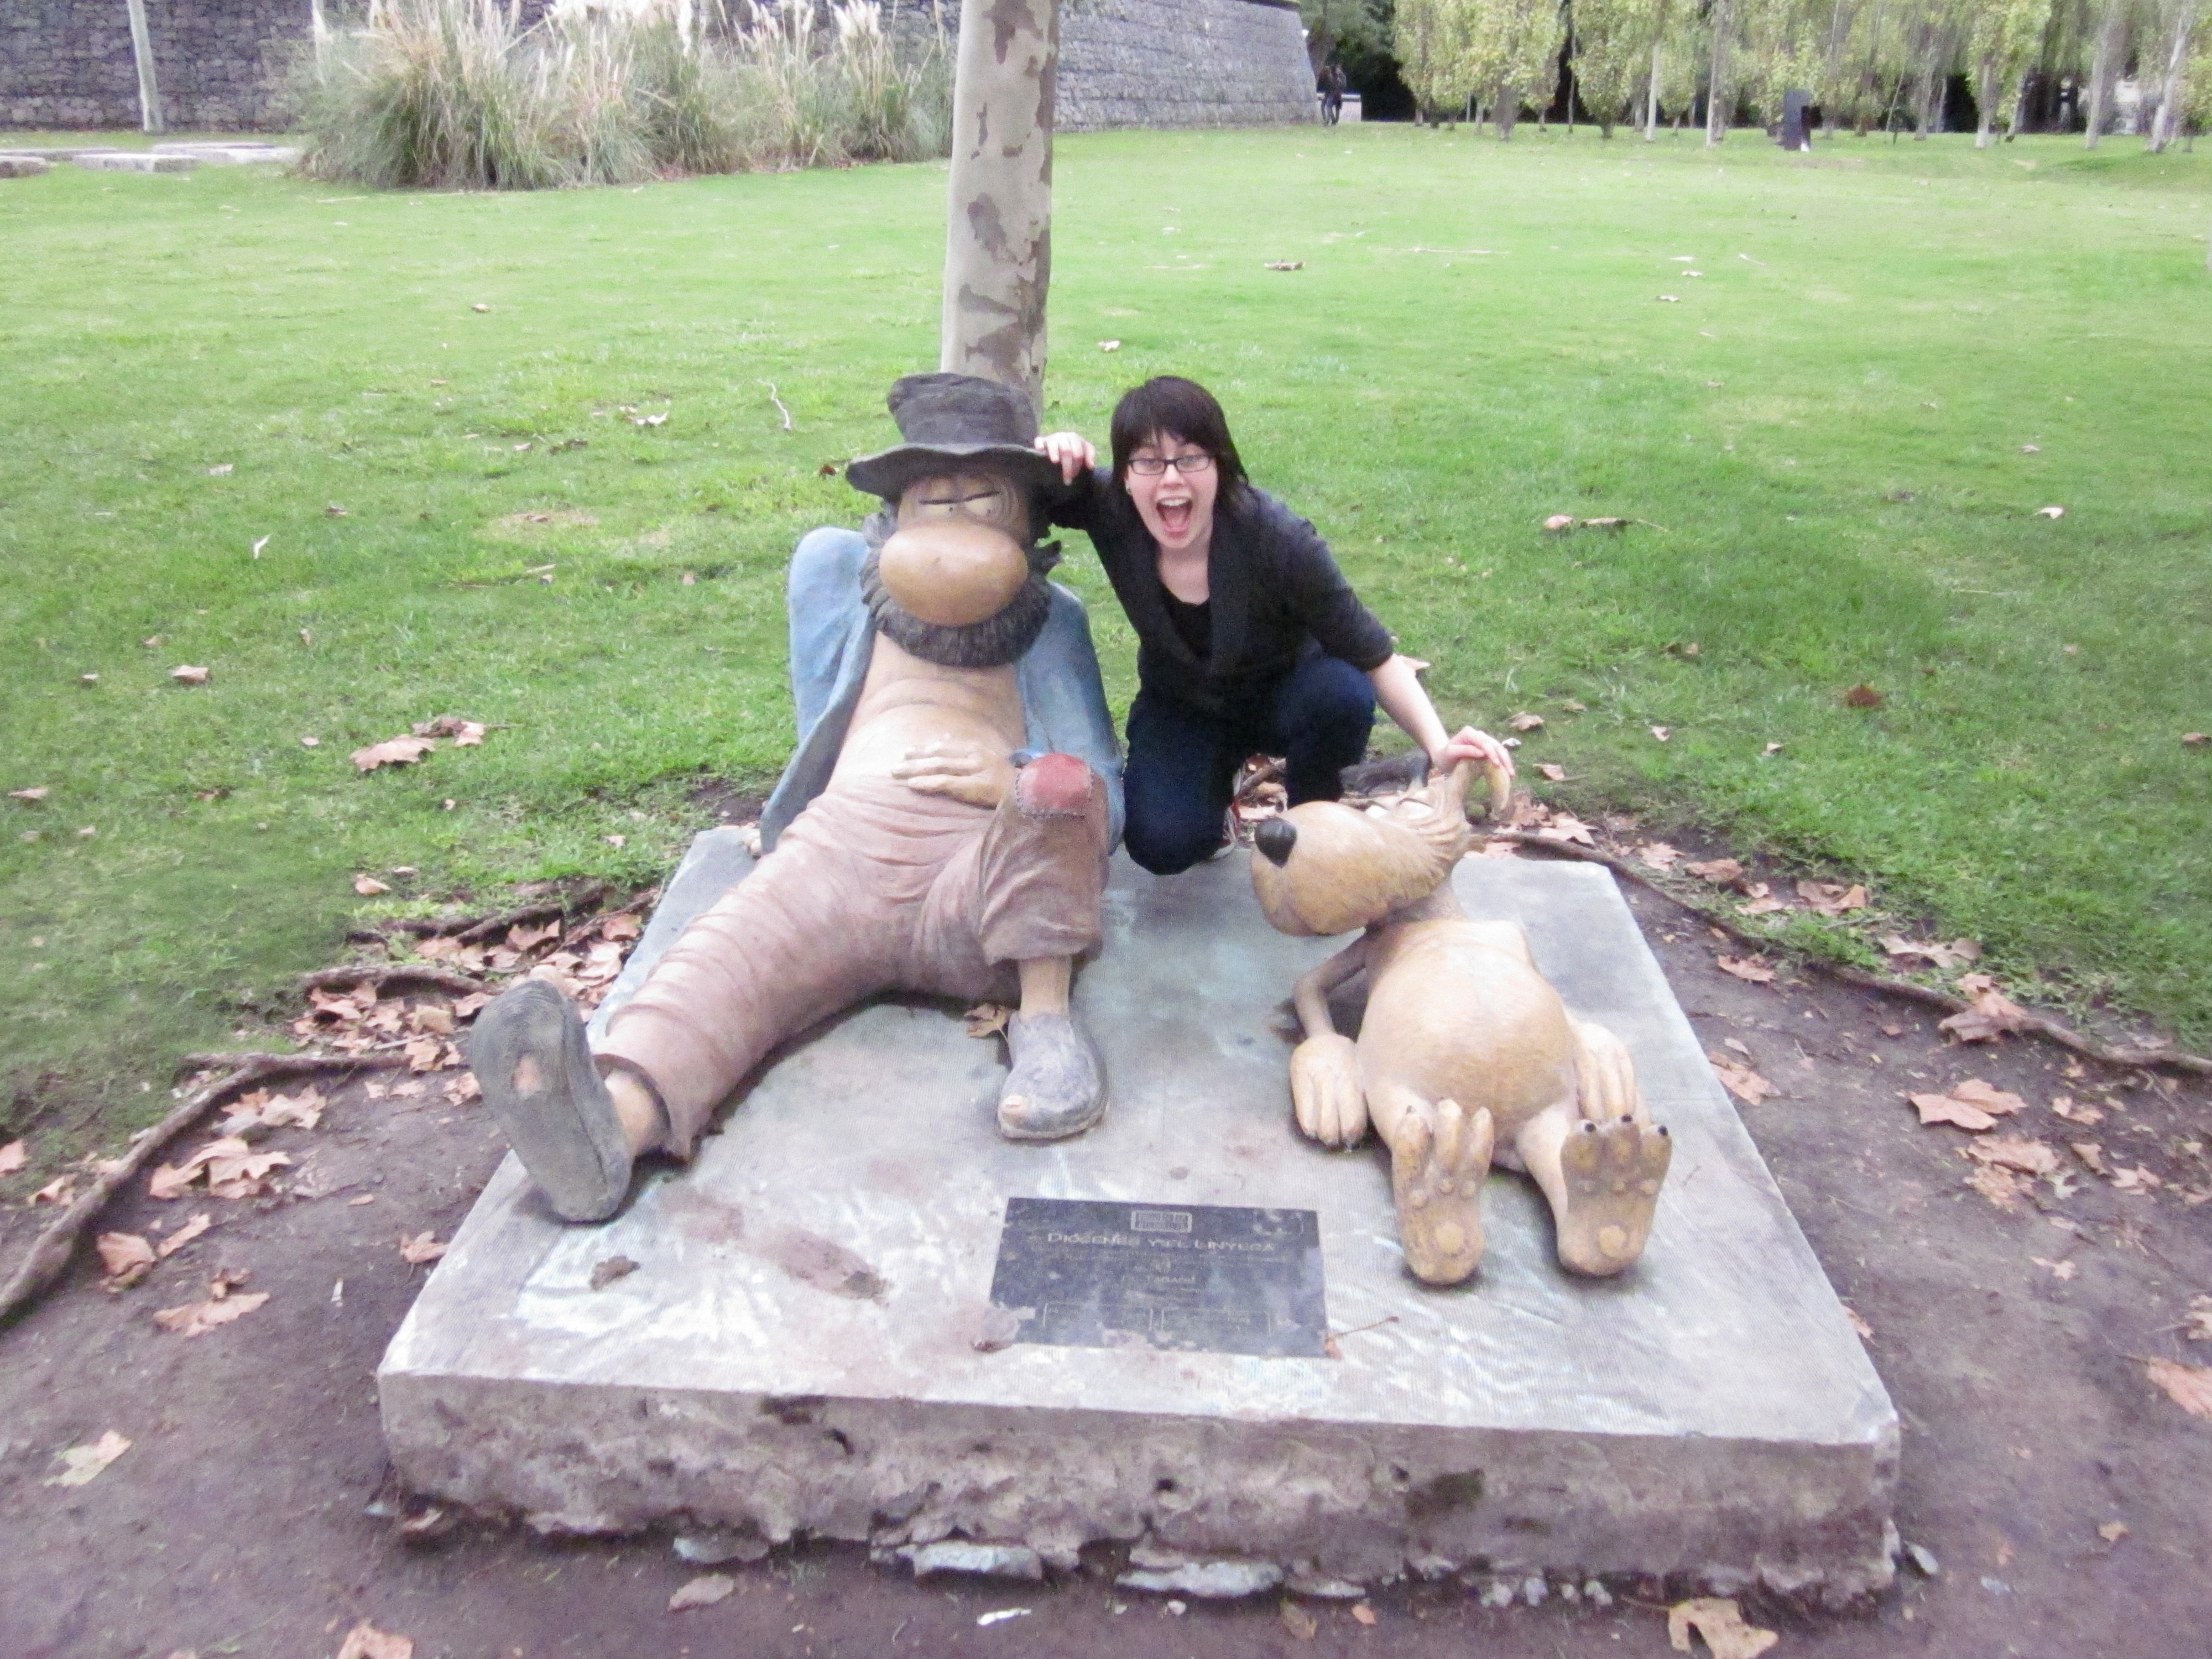 CAPAStudyAbroad_BuenosAires_Spring2016_From_Liz_Hendry_-_Me_with_the_statues_of_famous_Argentine_cartoon_characters.jpg